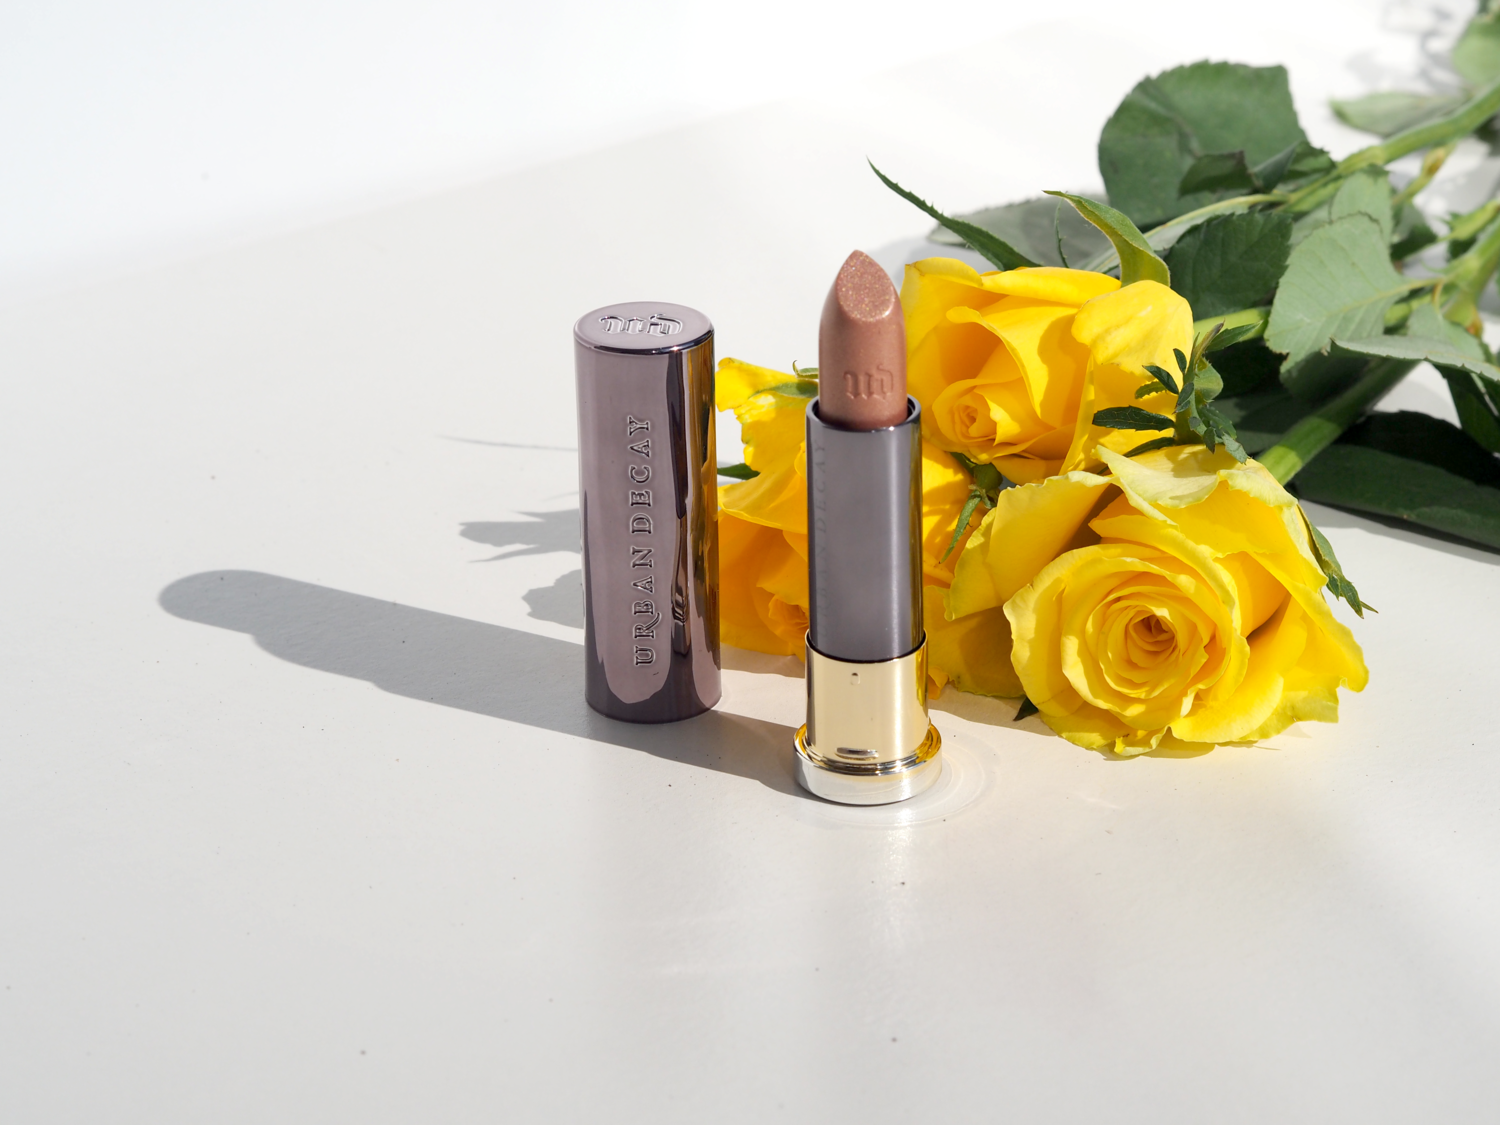 JOHN LEWIS, BEAUTY, LAURA BLAIR, LONDON FASHION GIRL, URBAN DECAY LIPSTICK, BEAUTY, LIPSTICK SWATCHES, TESTING LIPSTICKS